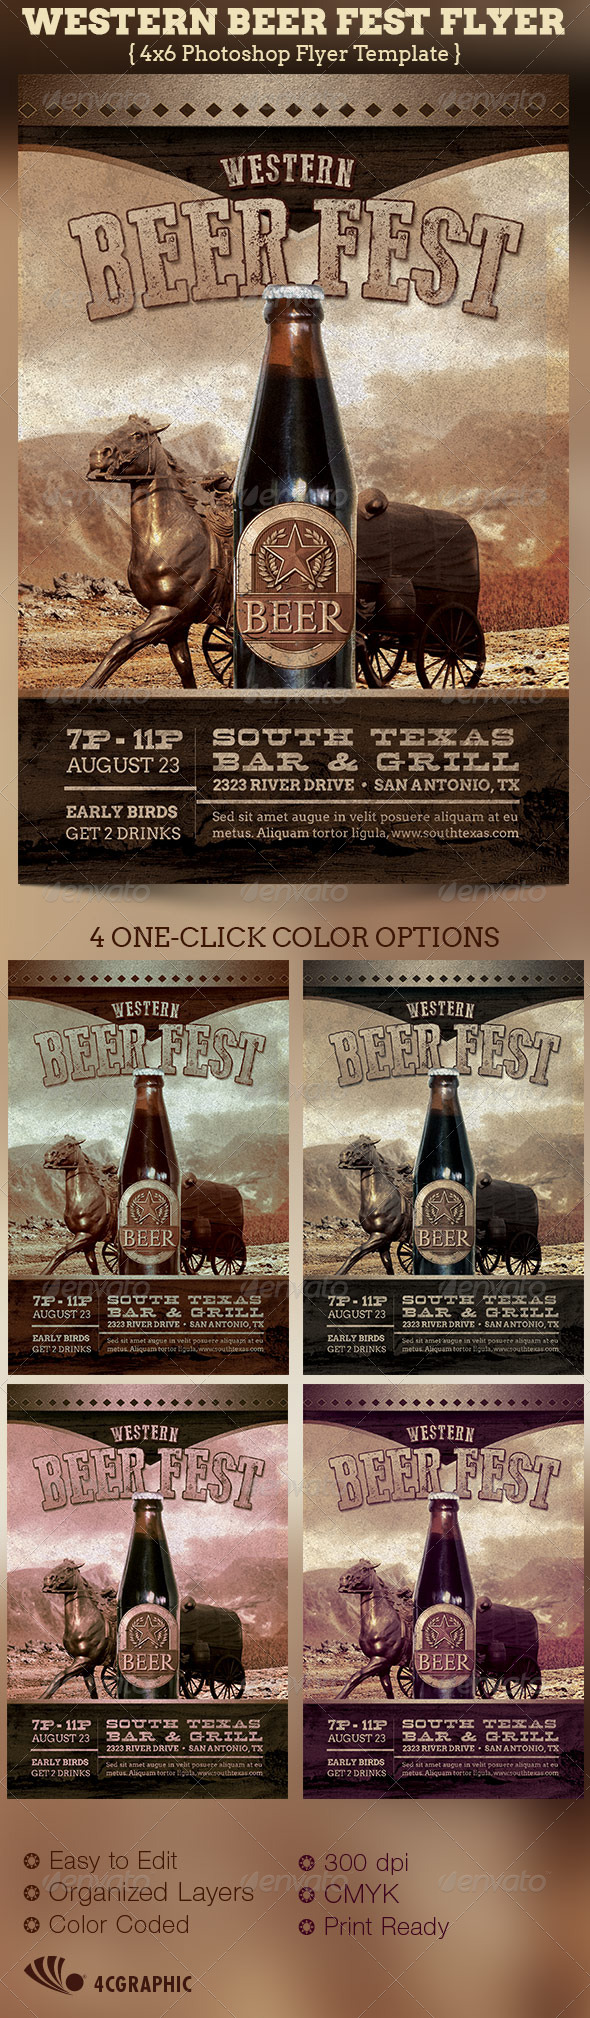 Western Beer Fest Flyer Template - Events Flyers